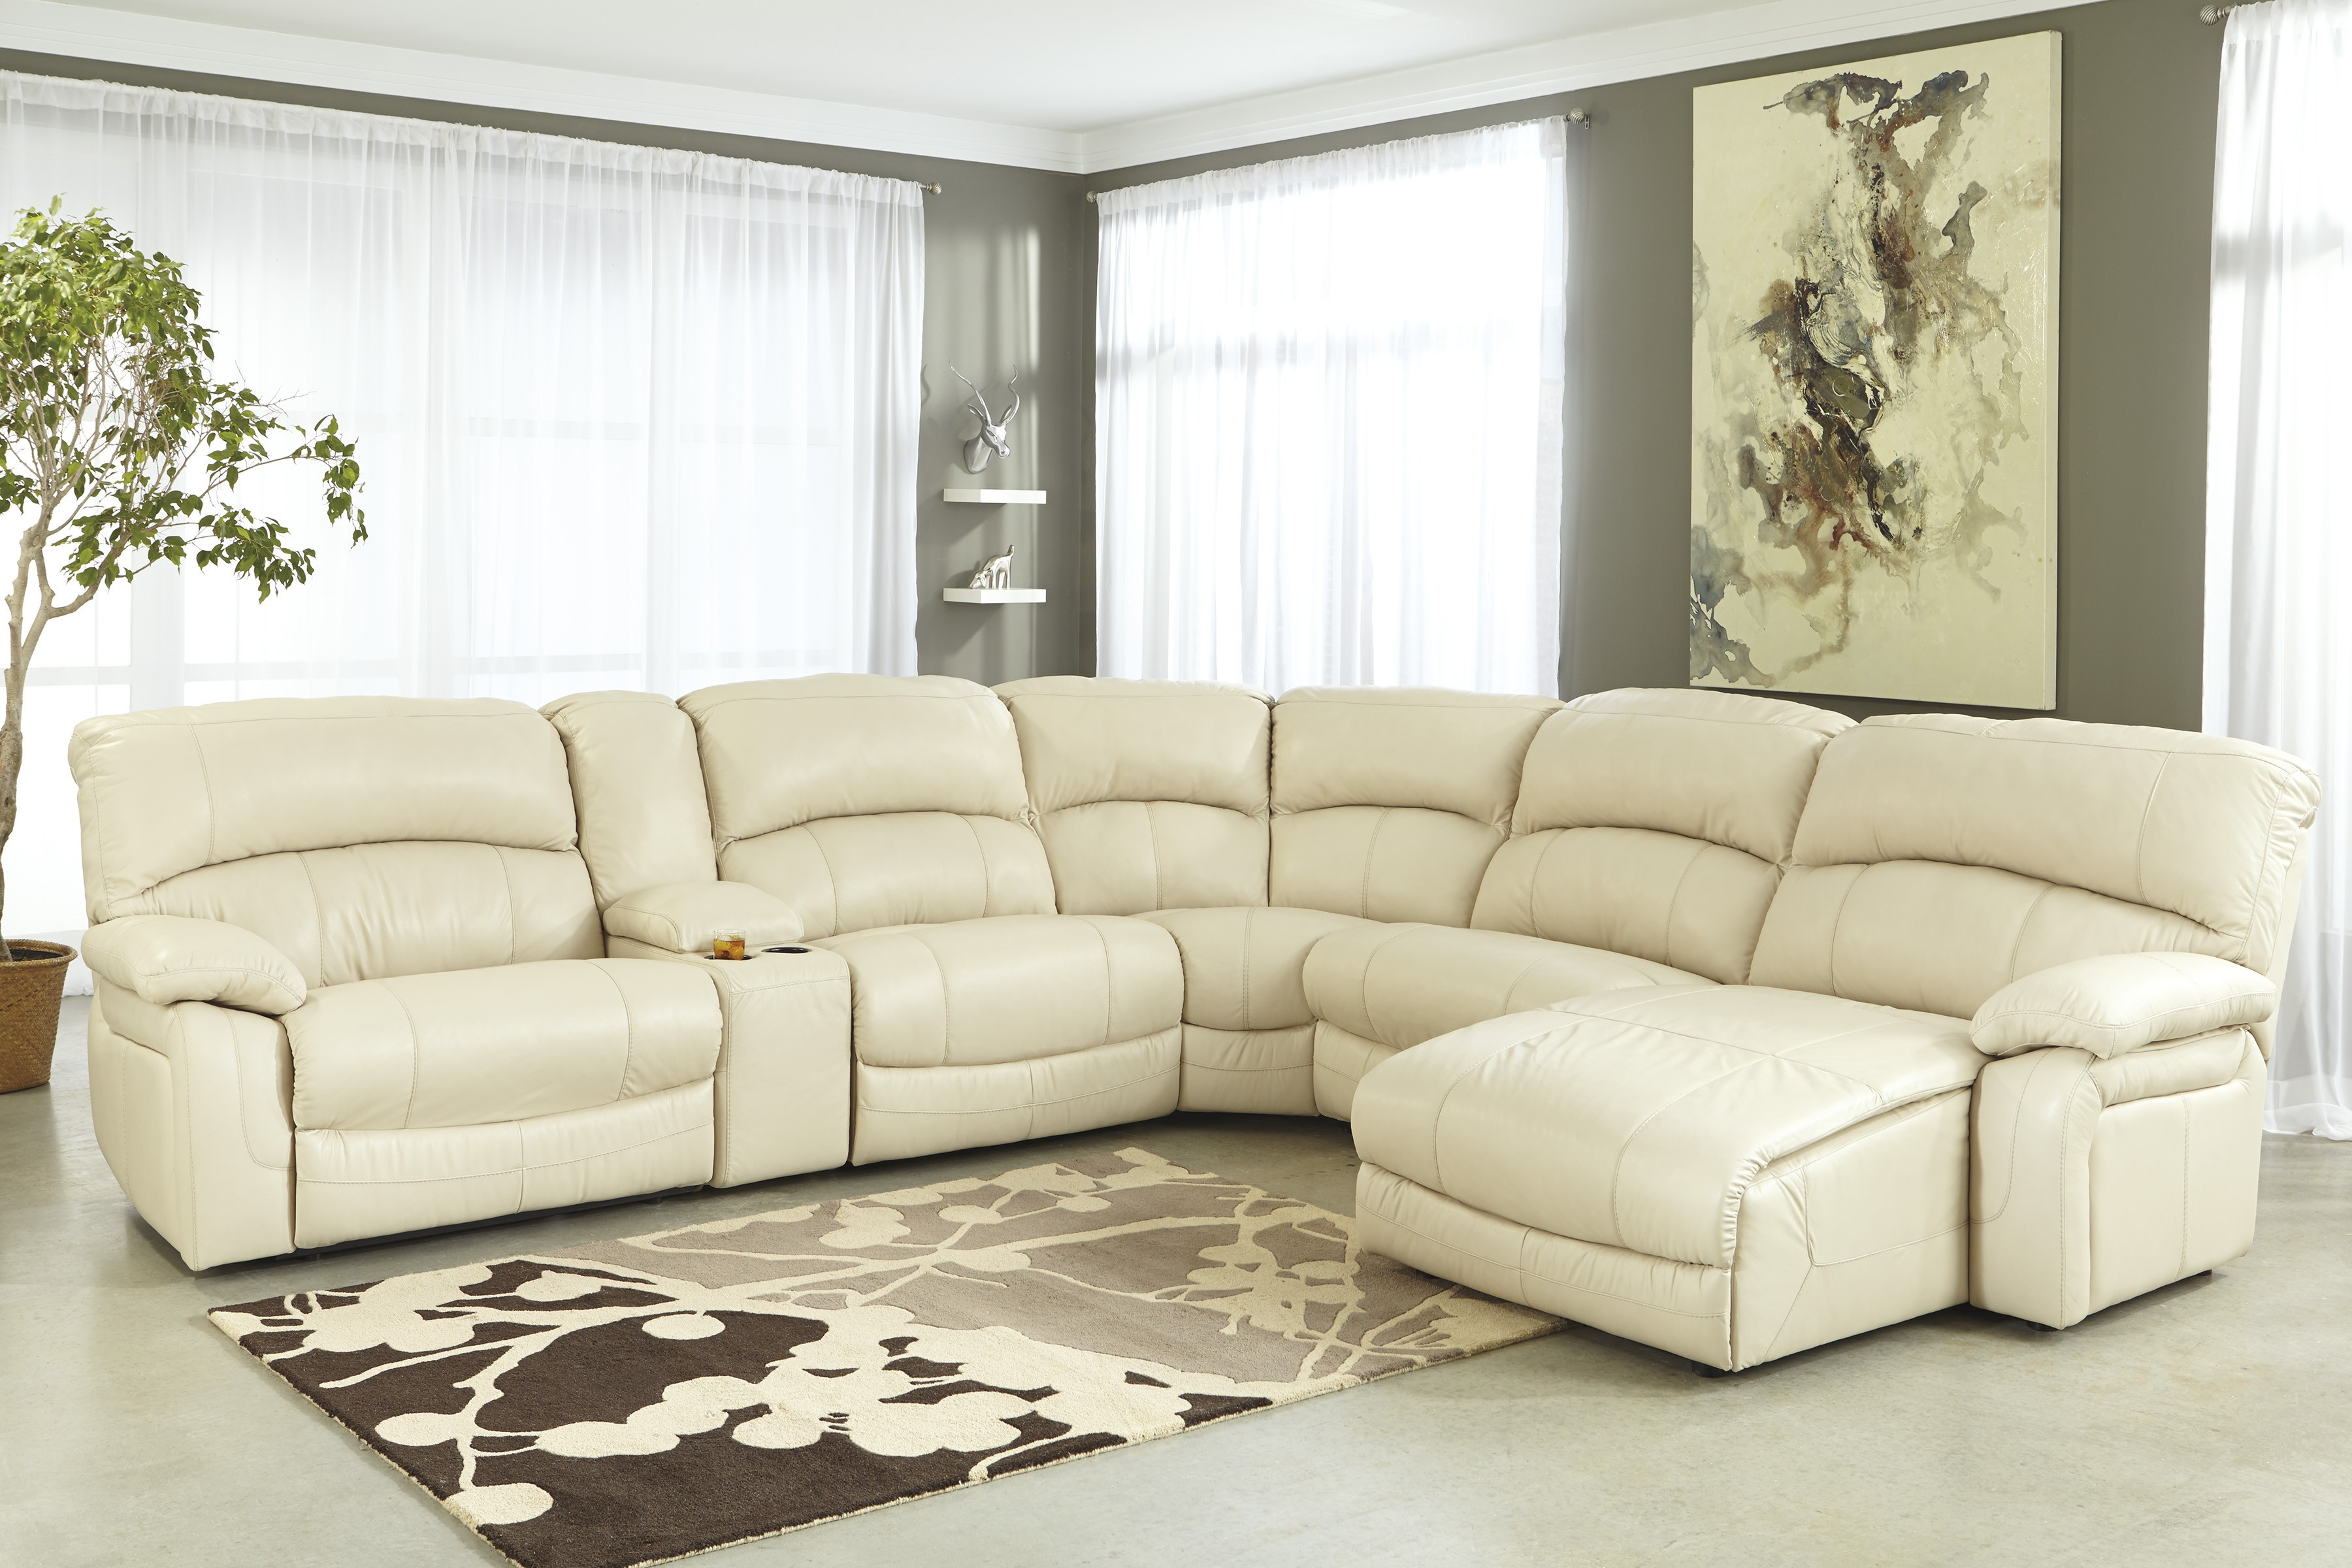 modern living rooms with white leather sectionals couch furniture and loveseat design